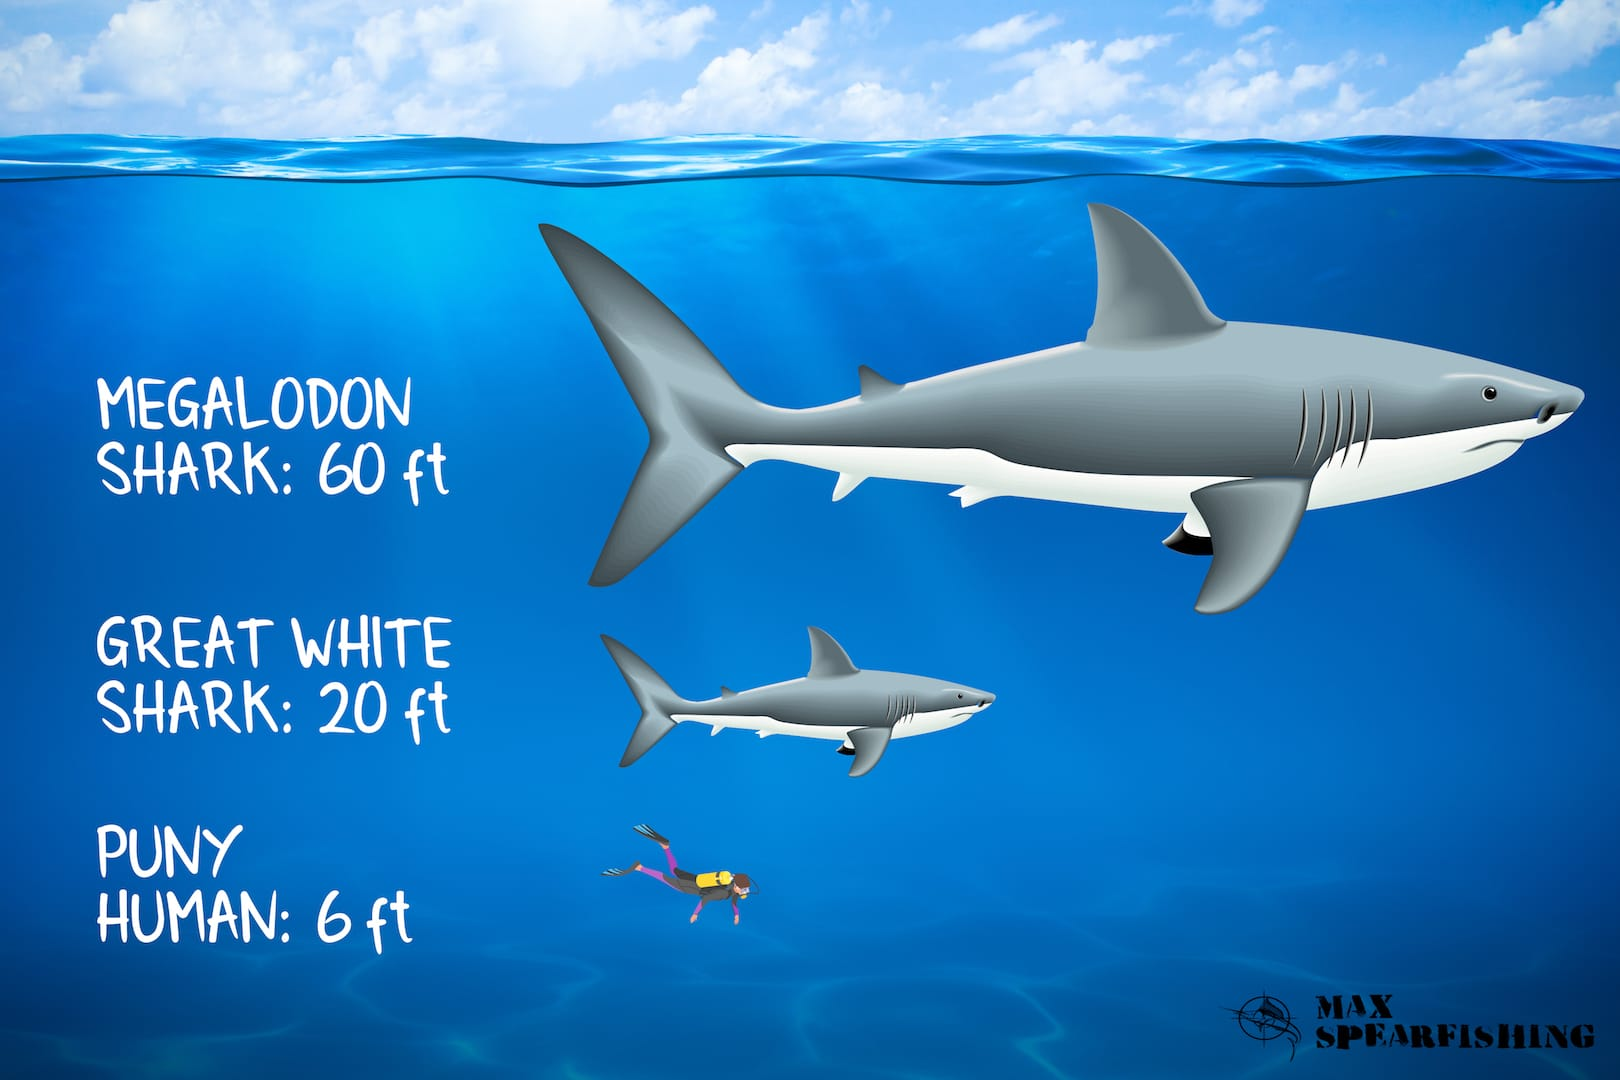 fun facts about the megalodon shark